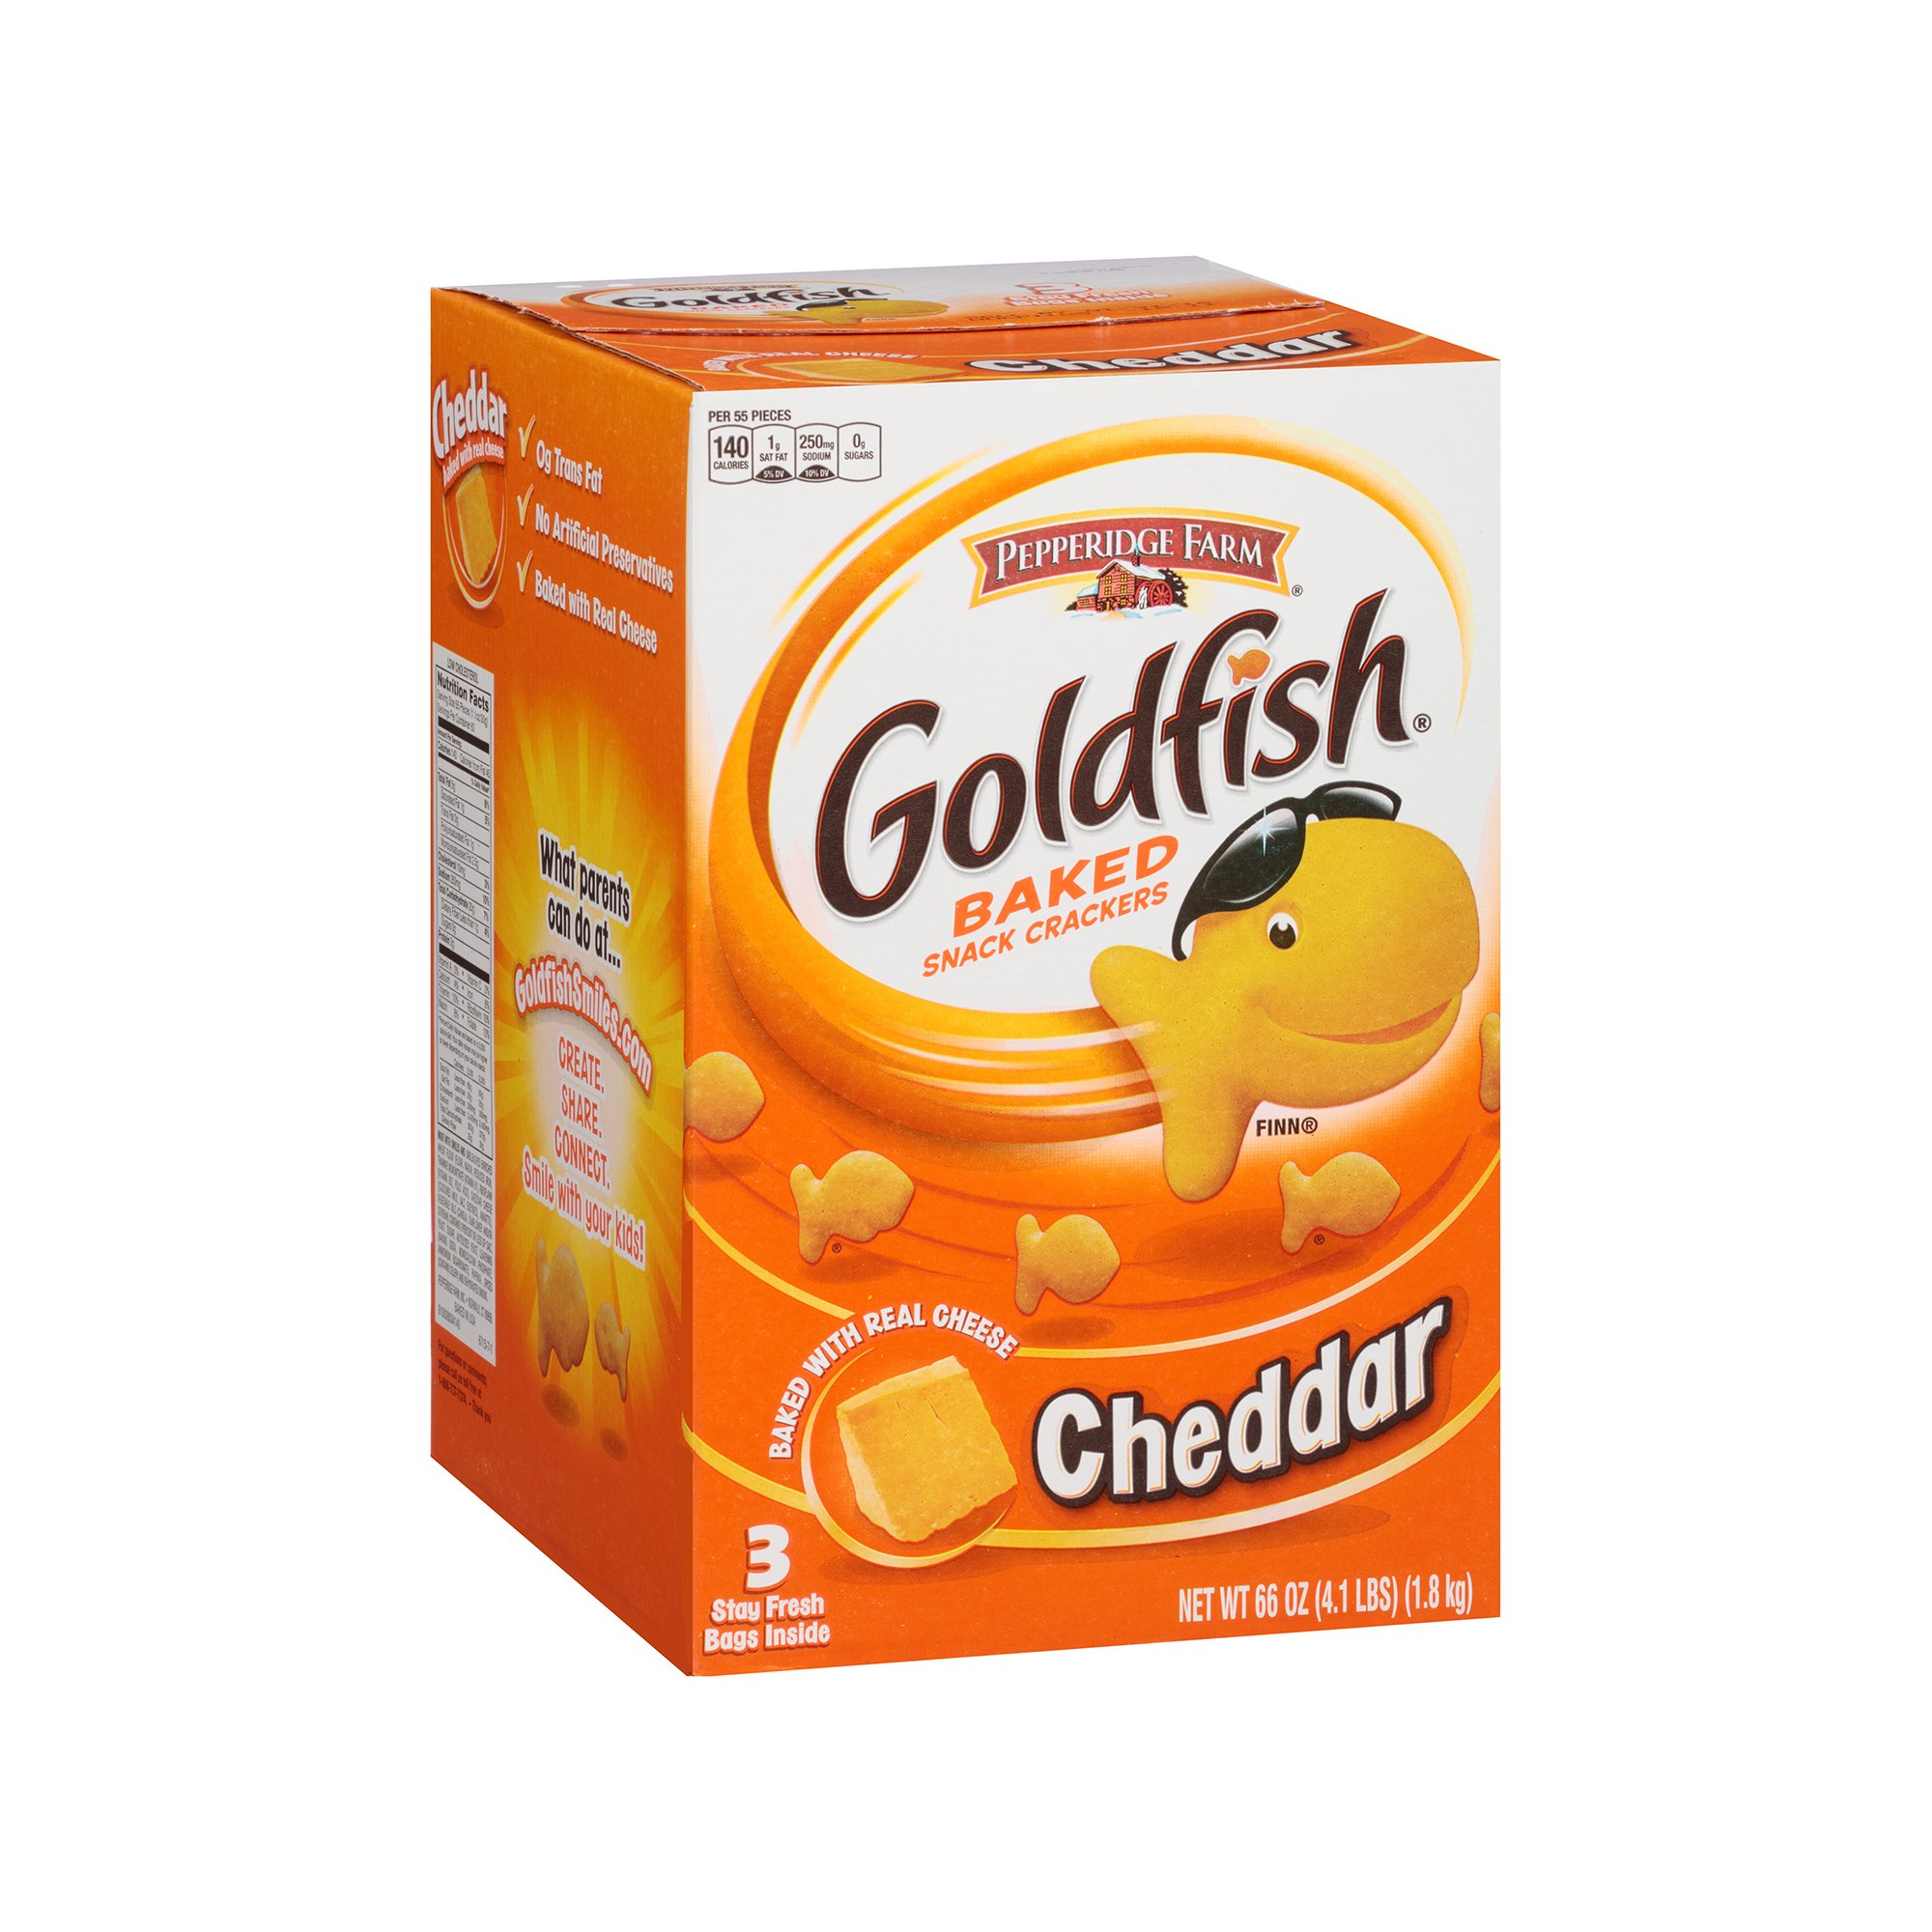 Branded Pepperidge Farm Goldfish Crackers (22 oz., 3 ct.) Pack of 1 [Qty Discount / wholesale price]